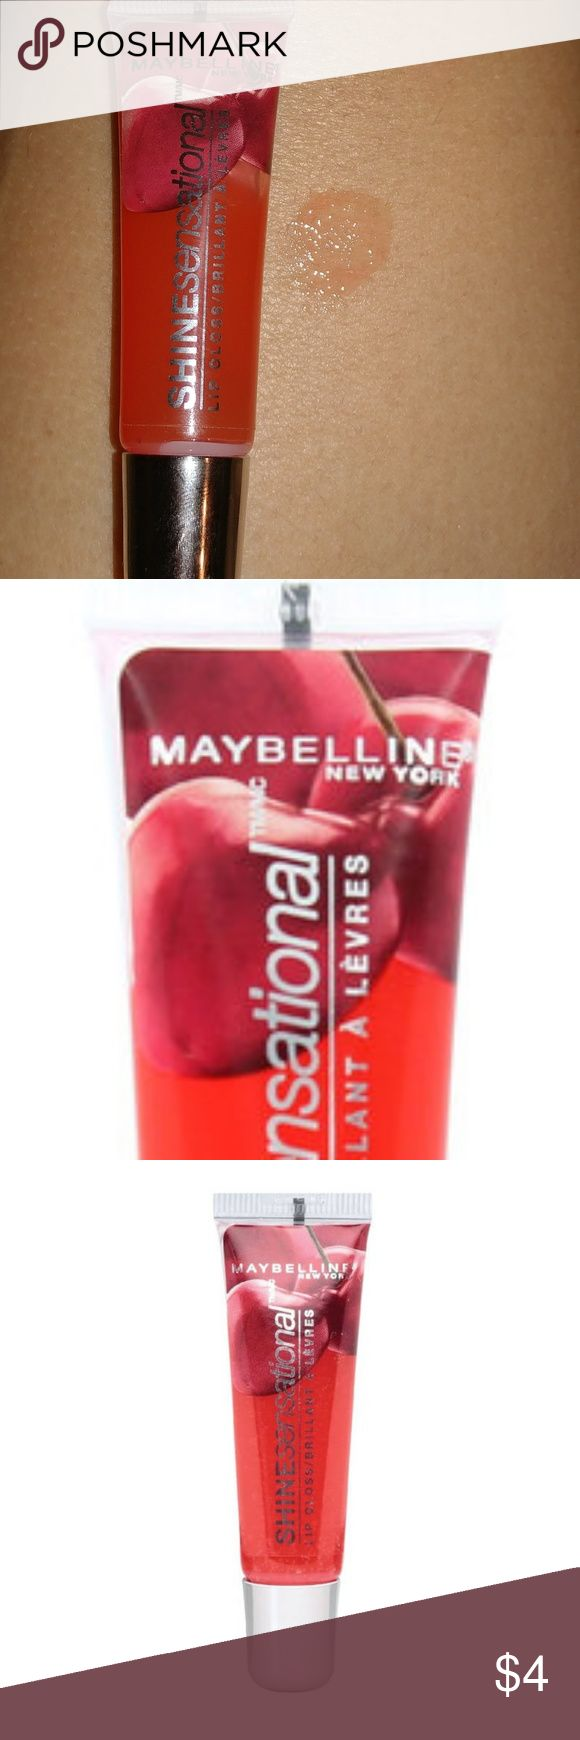 Maybelline New York Shinesensational Lip Gloss Luscious, glassy, glossy and yummy.  Luscious shine, delectable feel.  Comfortable, non-sticky, moisturizing, high-shine formula.  Apply alone or over your favorite lip color. Mix and match different shades to create your own flavor and fragrance.  .38 oz.  Made in USA!  # 75 cherry kiss Maybelline Makeup Lip Balm & Gloss